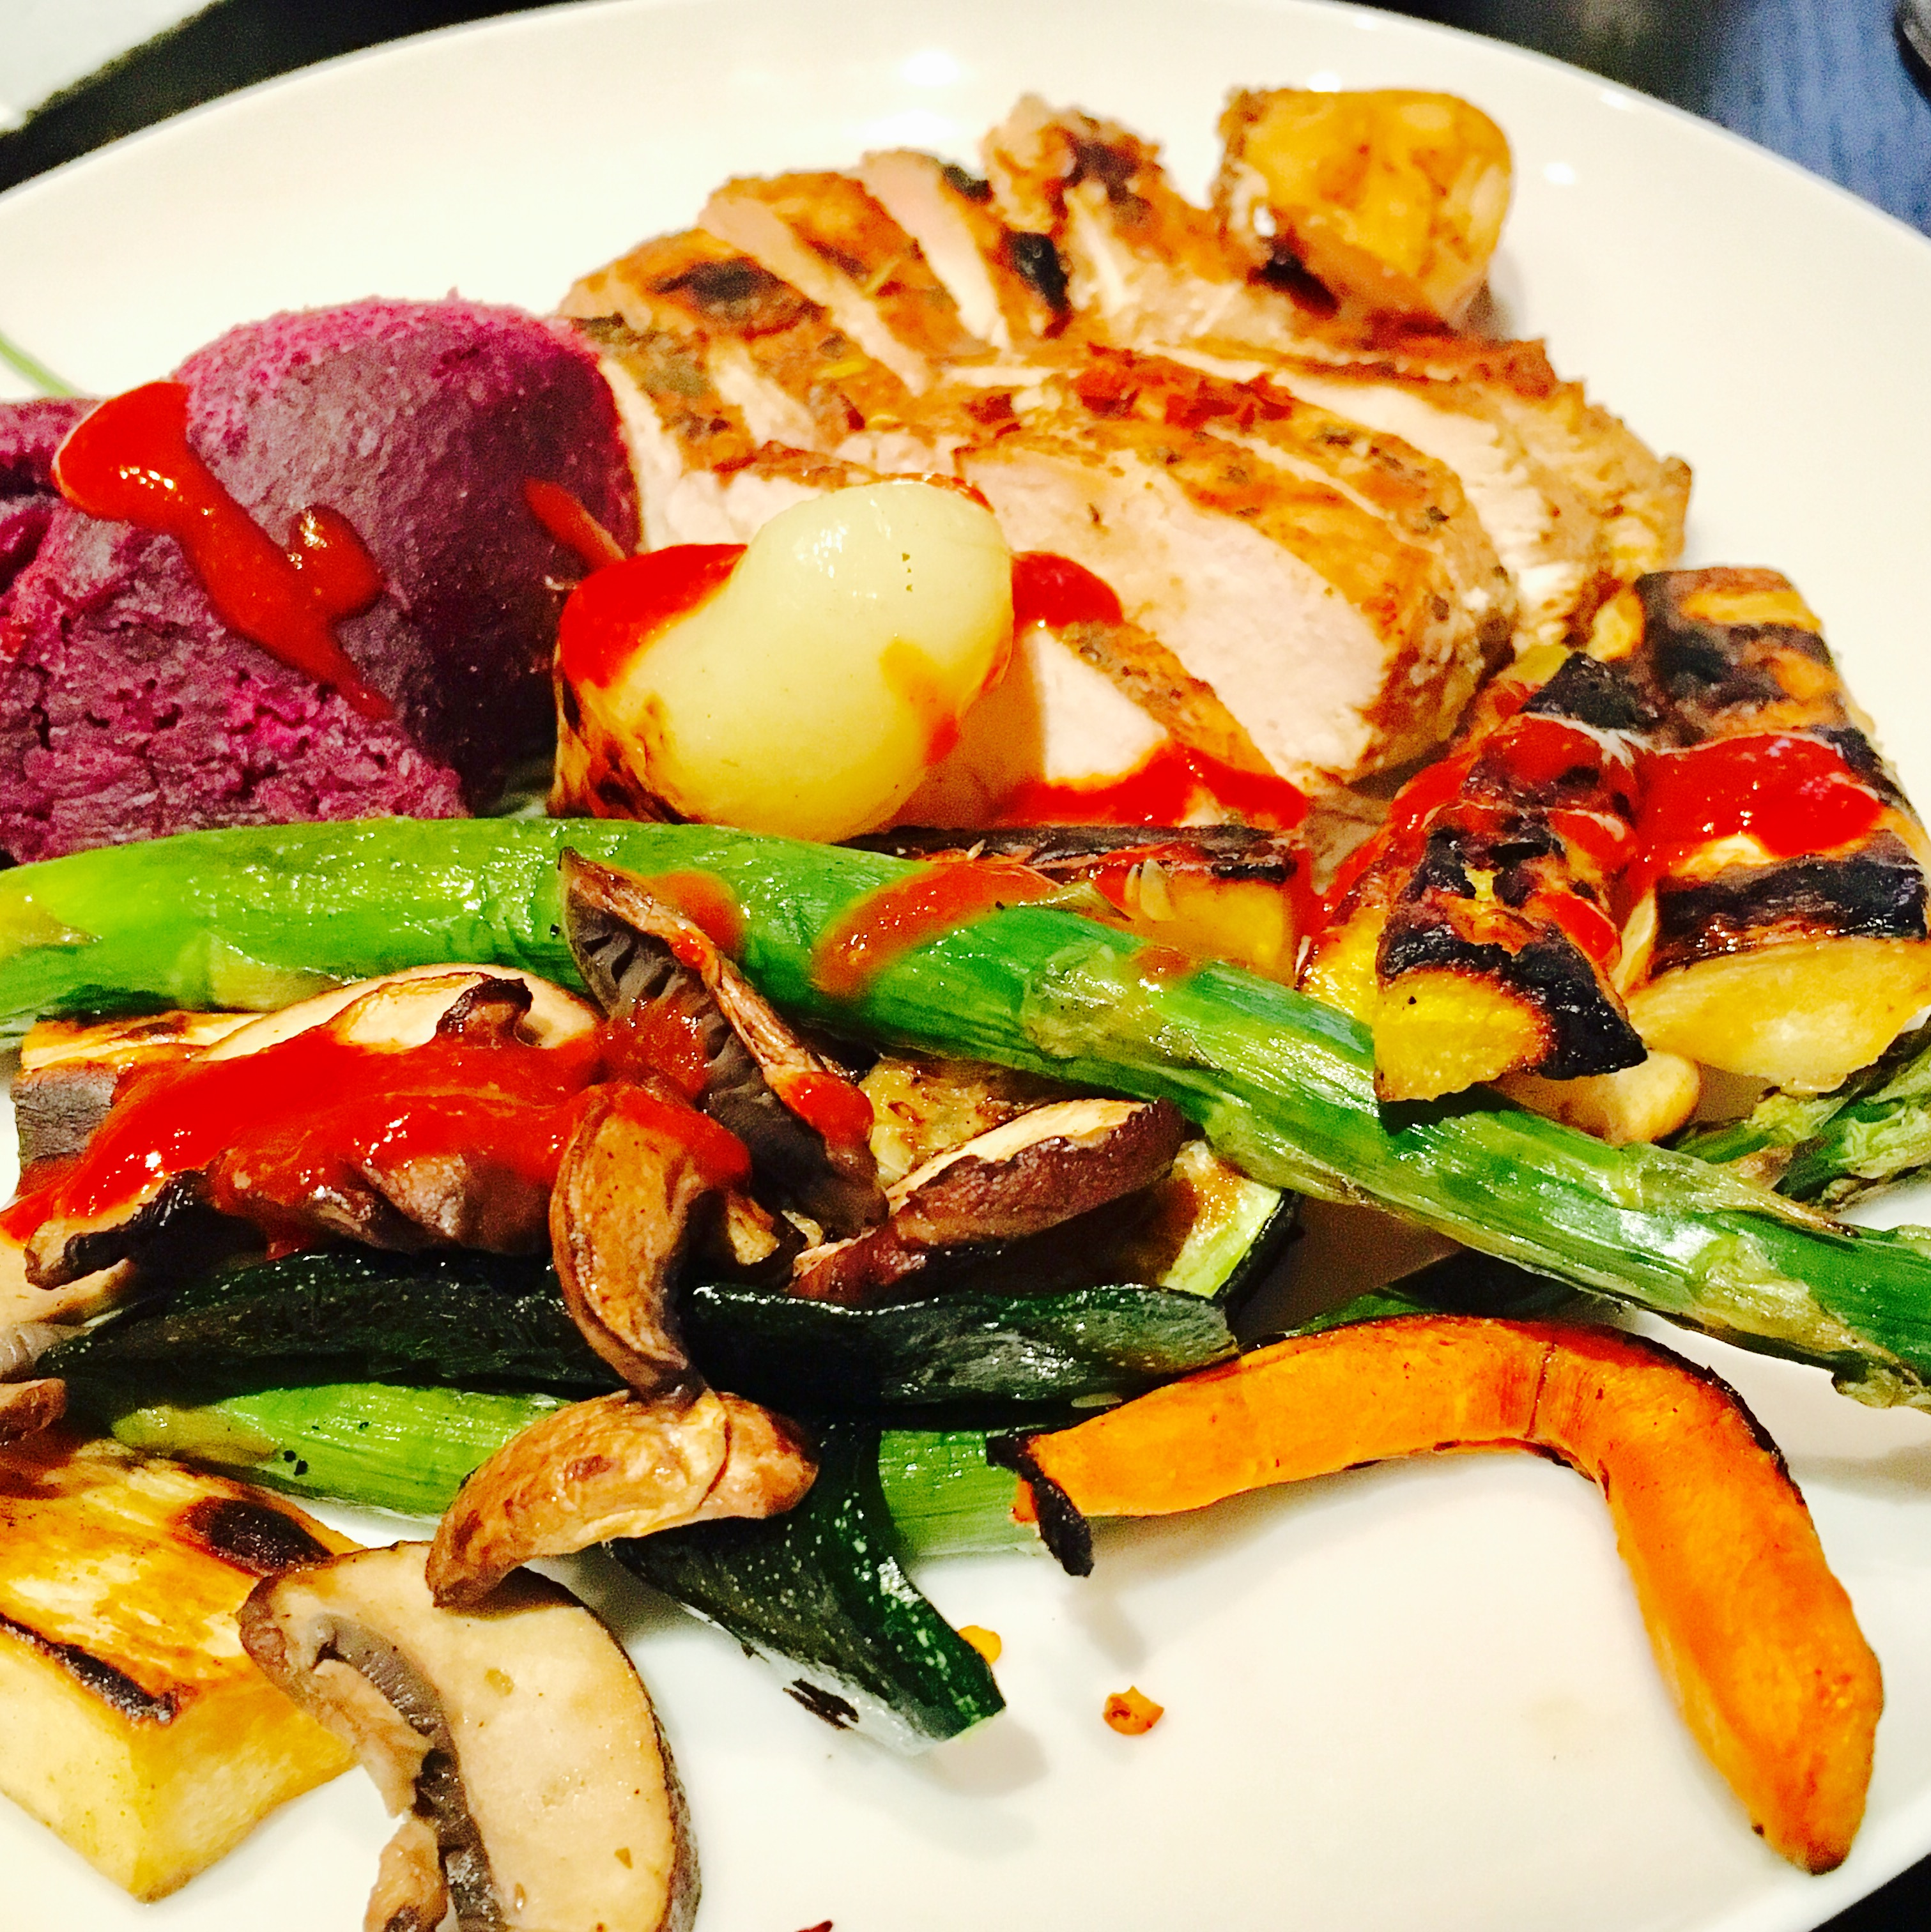 balsamic-grilled-chicken-and-veggies